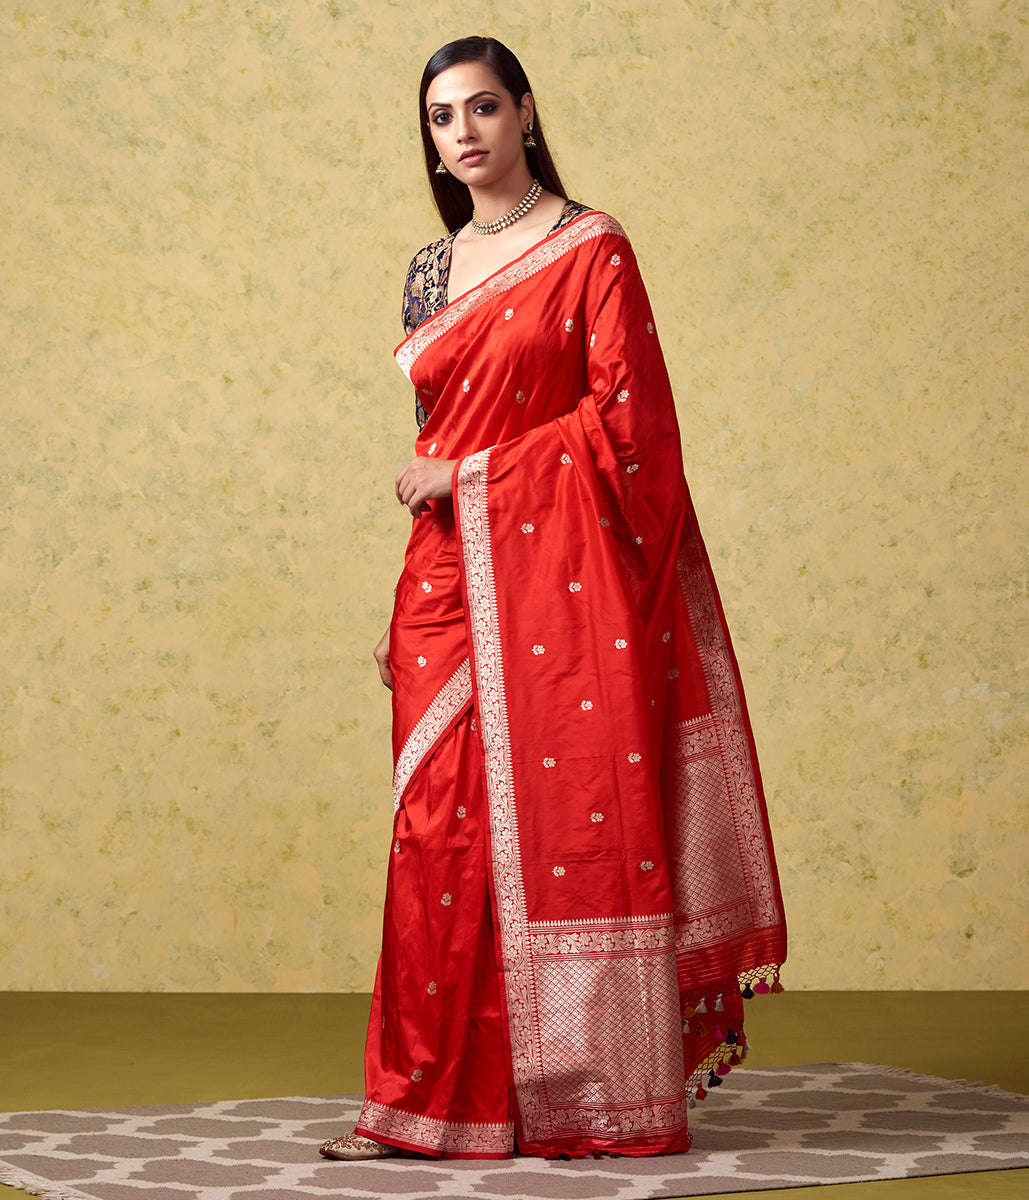 Handwoven Red Katan Silk Banarasi with Small Floral Motifs and Blue Blouse